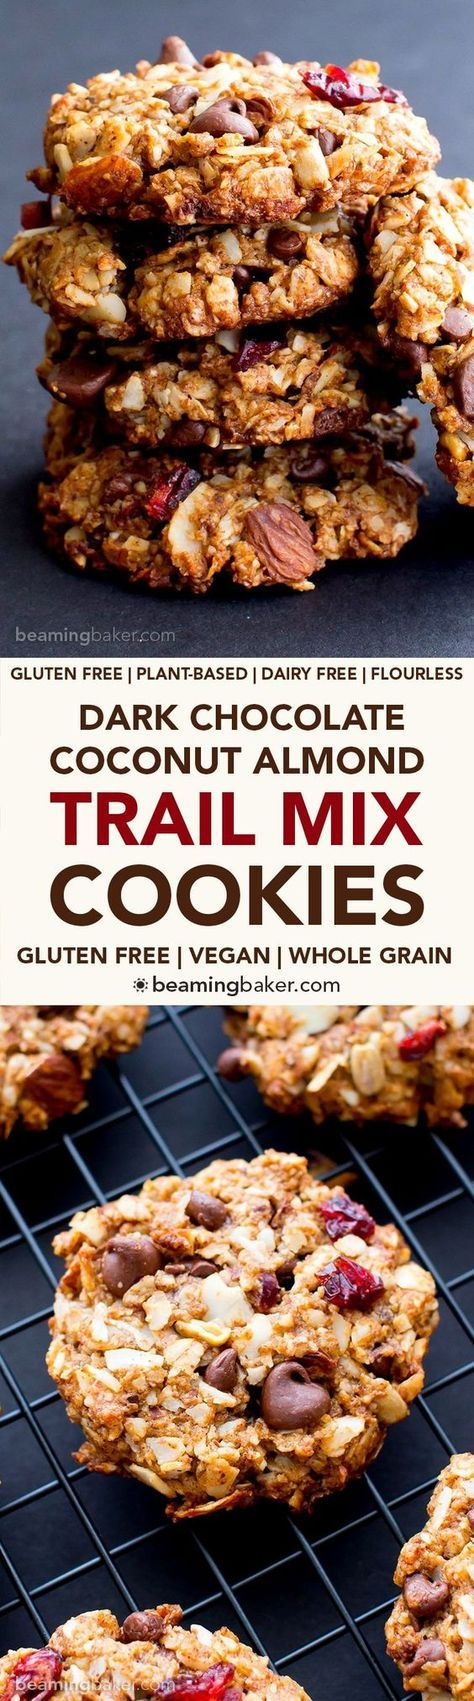 Dark Chocolate Almond Coconut Trail Mix Cookies (V, GF, DF): an easy recipe for deliciously textured chewy trail mix cookies bursting with chocolate, almond and coconut. #Vegan #GlutenFree #DairyFree | BeamingBaker.com